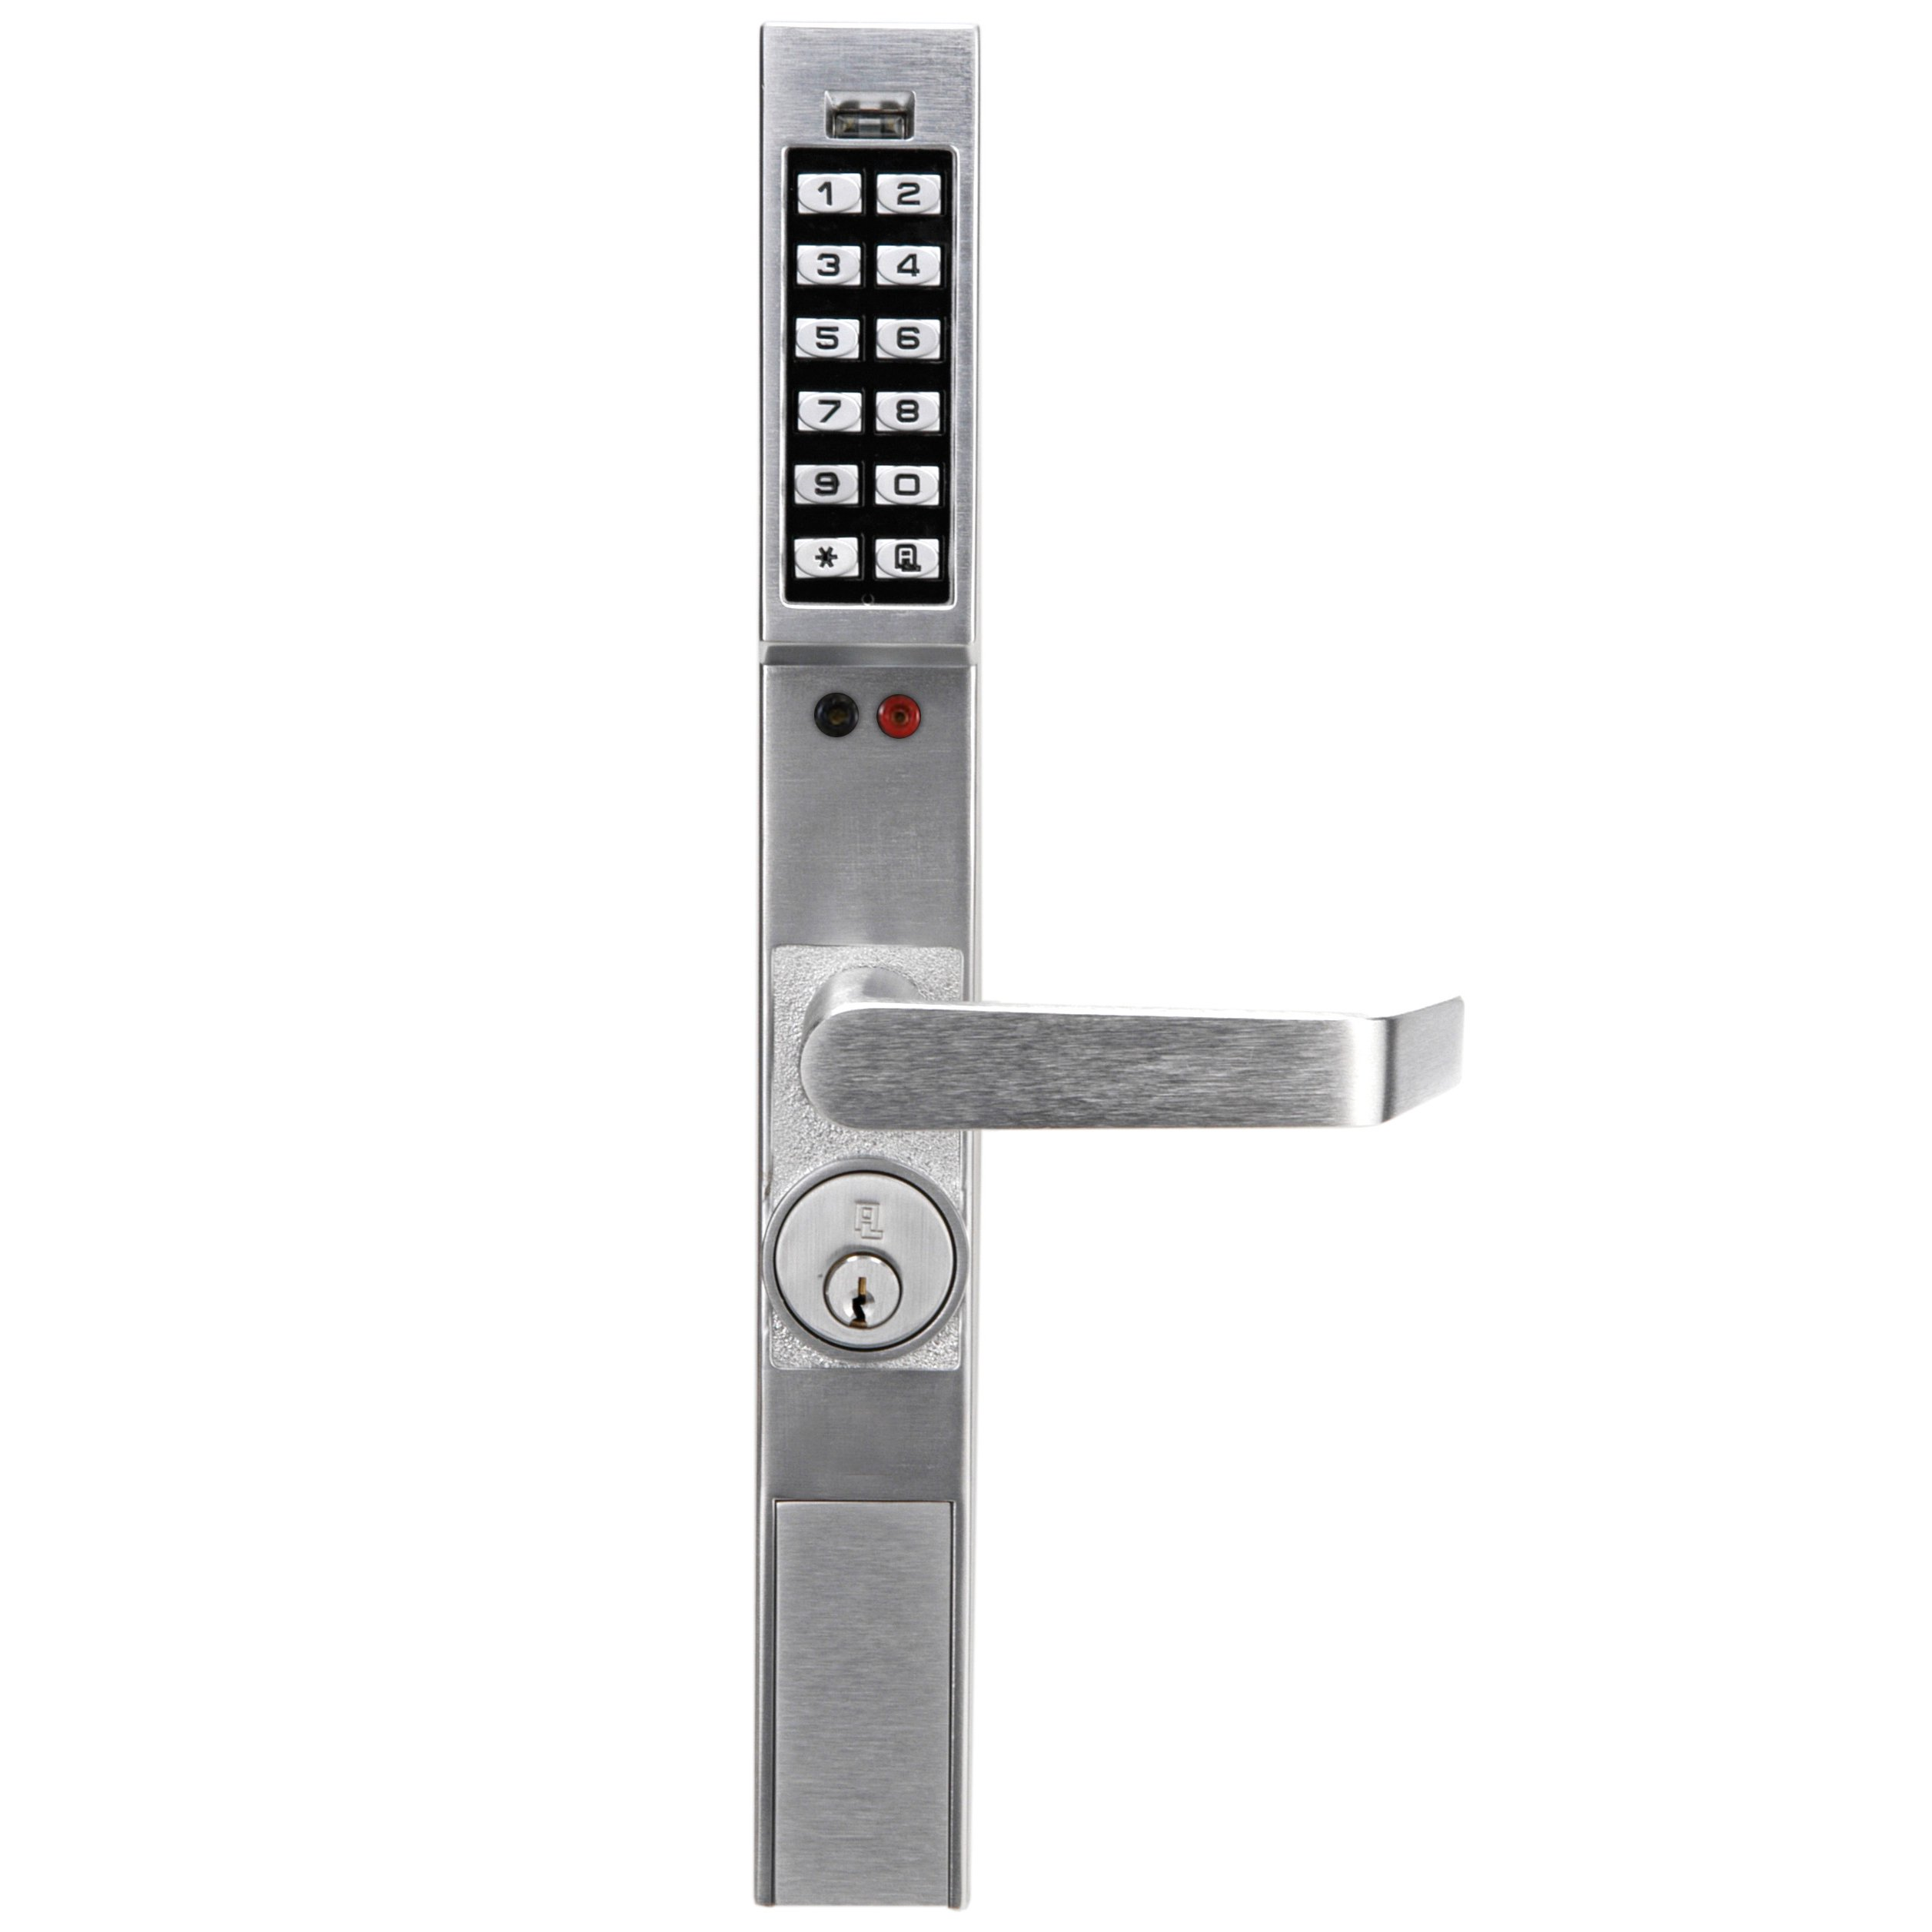 ALA DL120026D1 Narrow Stile Door Lock For Deadlatch.Weatherproof